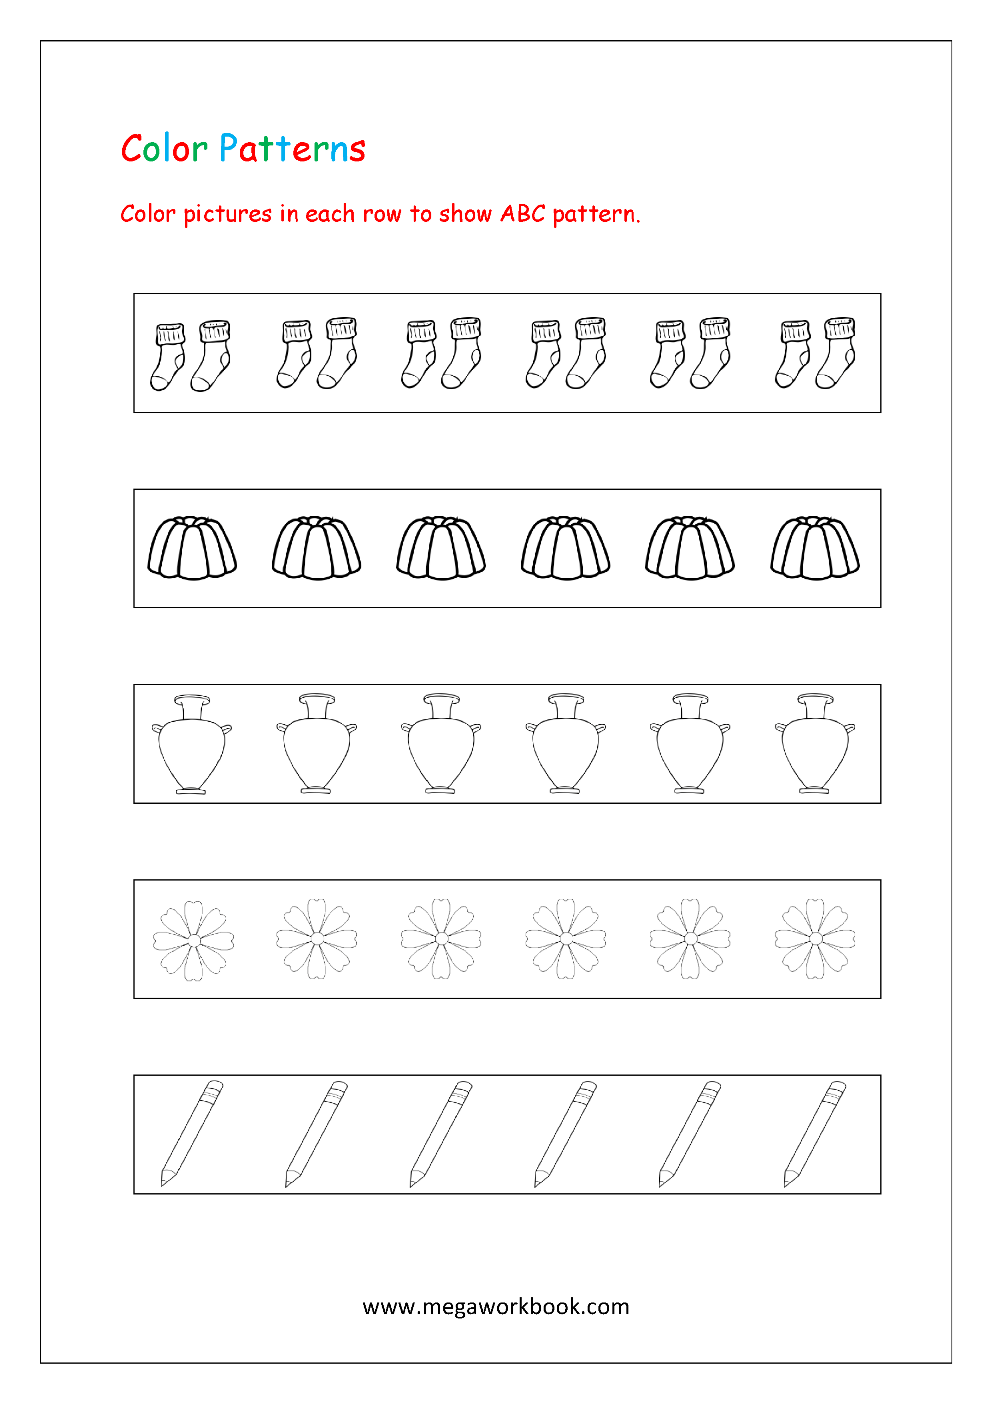 Pattern Worksheets For Kindergarten Color Patterns